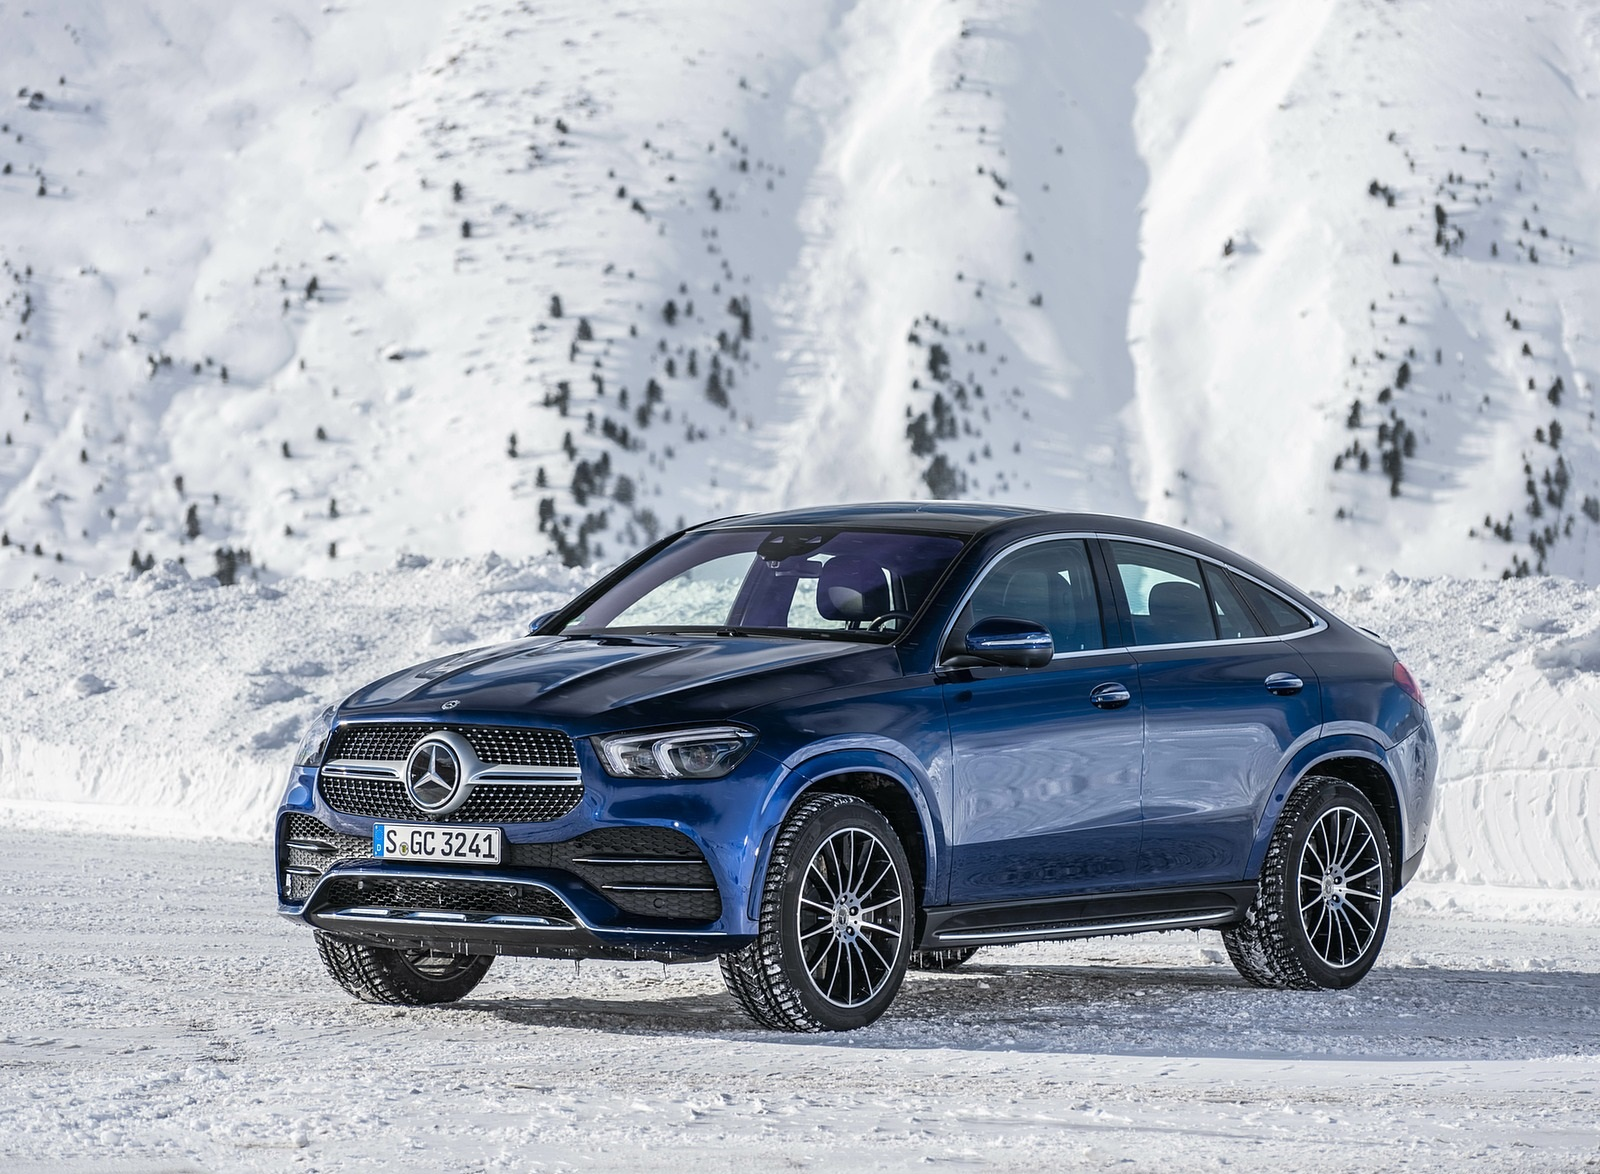 2021 Mercedes-Benz GLE Coupe 400 d 4MATIC Coupe (Color: Brilliant Blue Metallic) Front Three-Quarter Wallpapers (4)